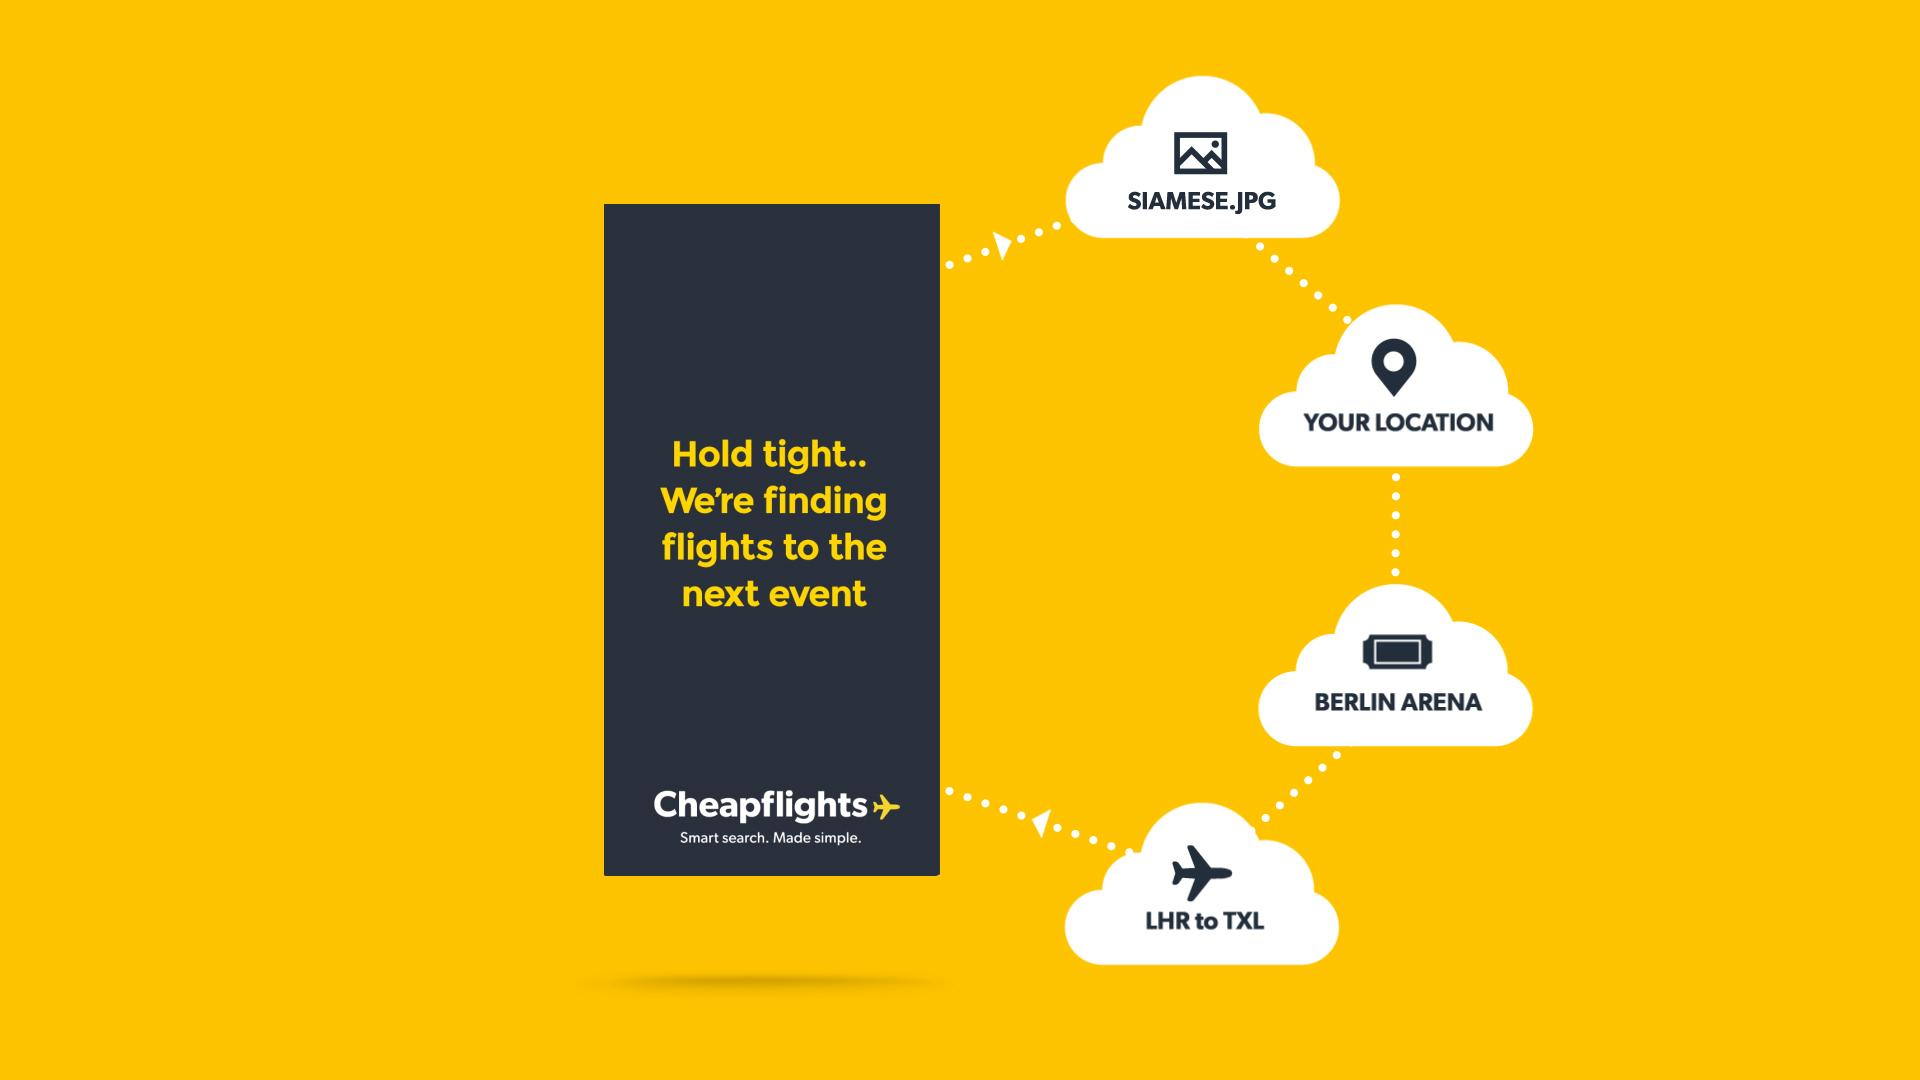 Cheapflights.co.uk Digital Ad - Drag, drop and go